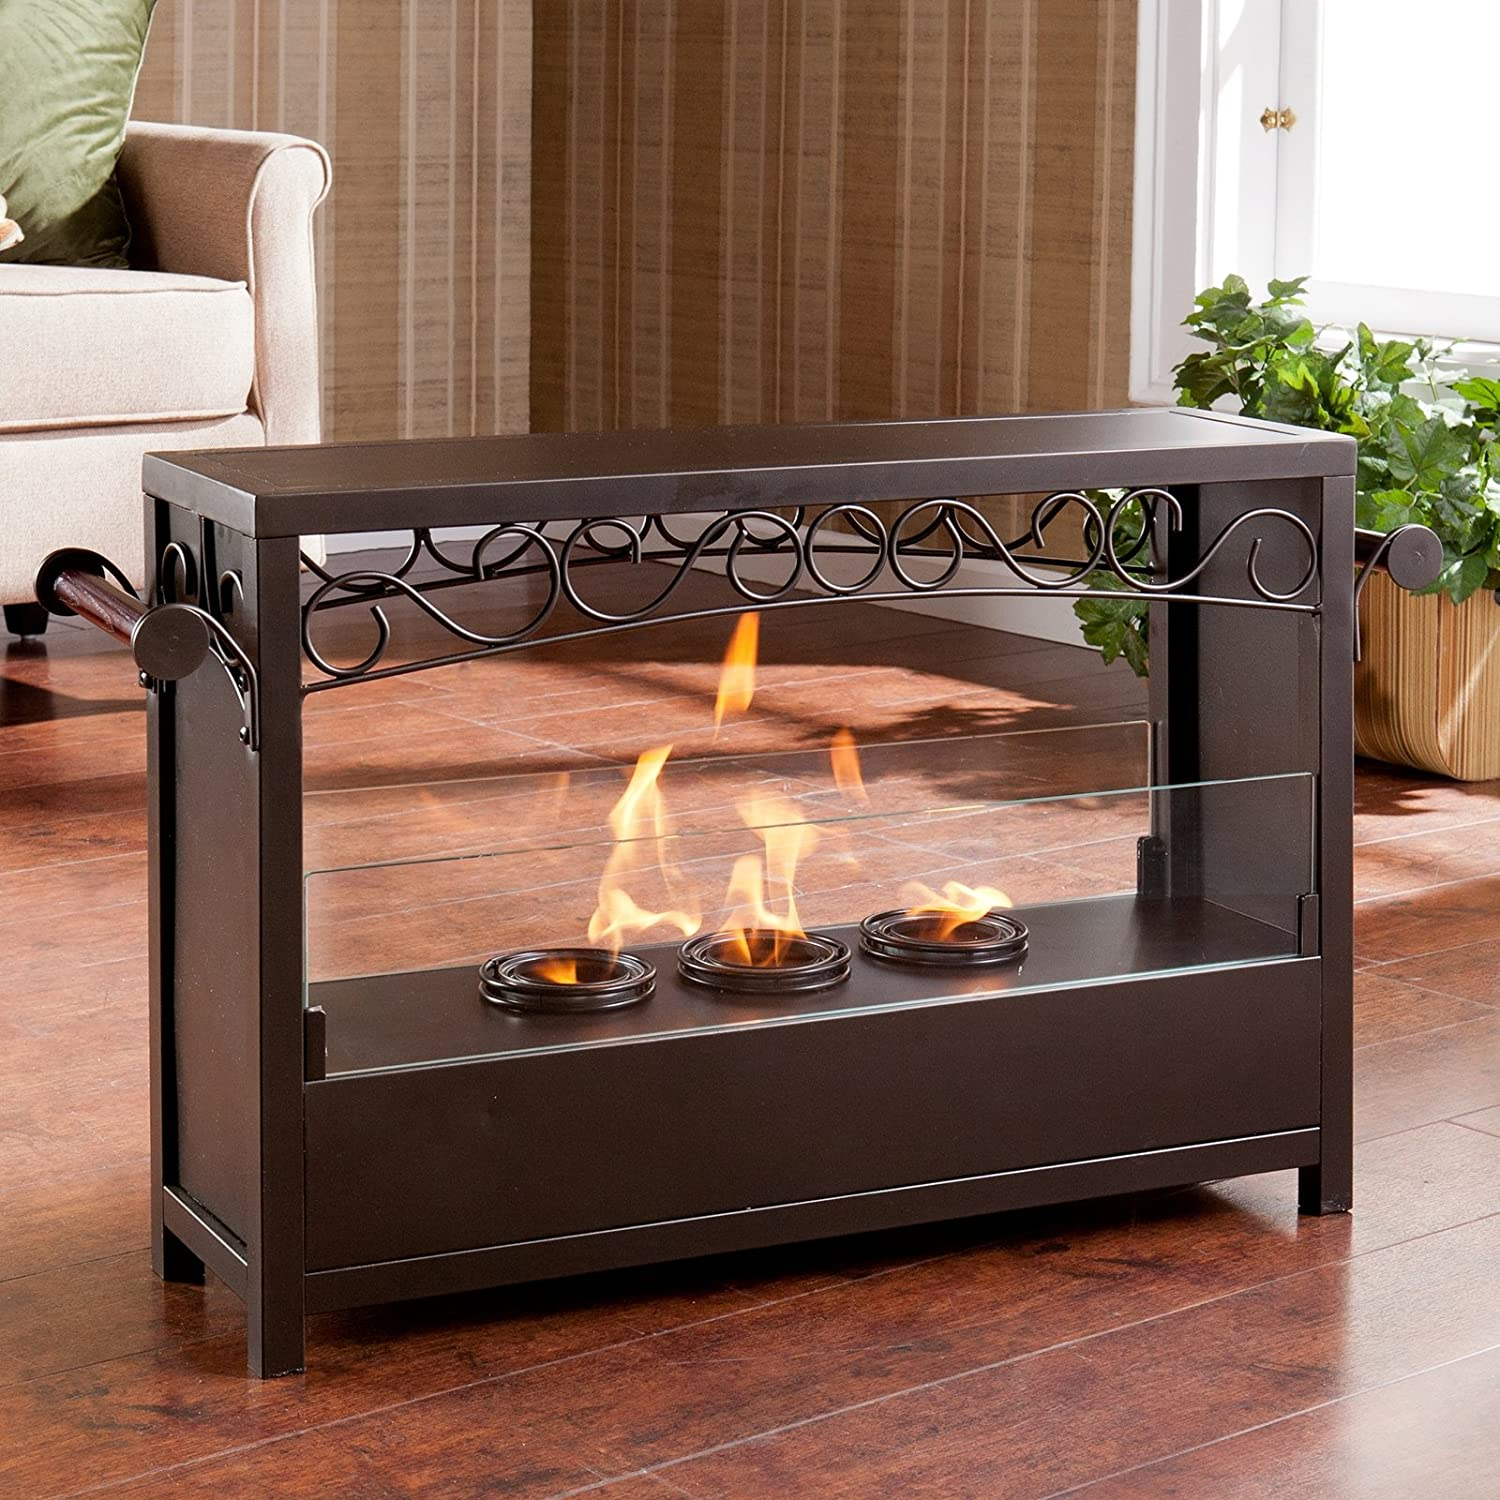 Amazon.com: SEI AMZ1485 Acosta Portable Indoor/Outdoor Fireplace ...